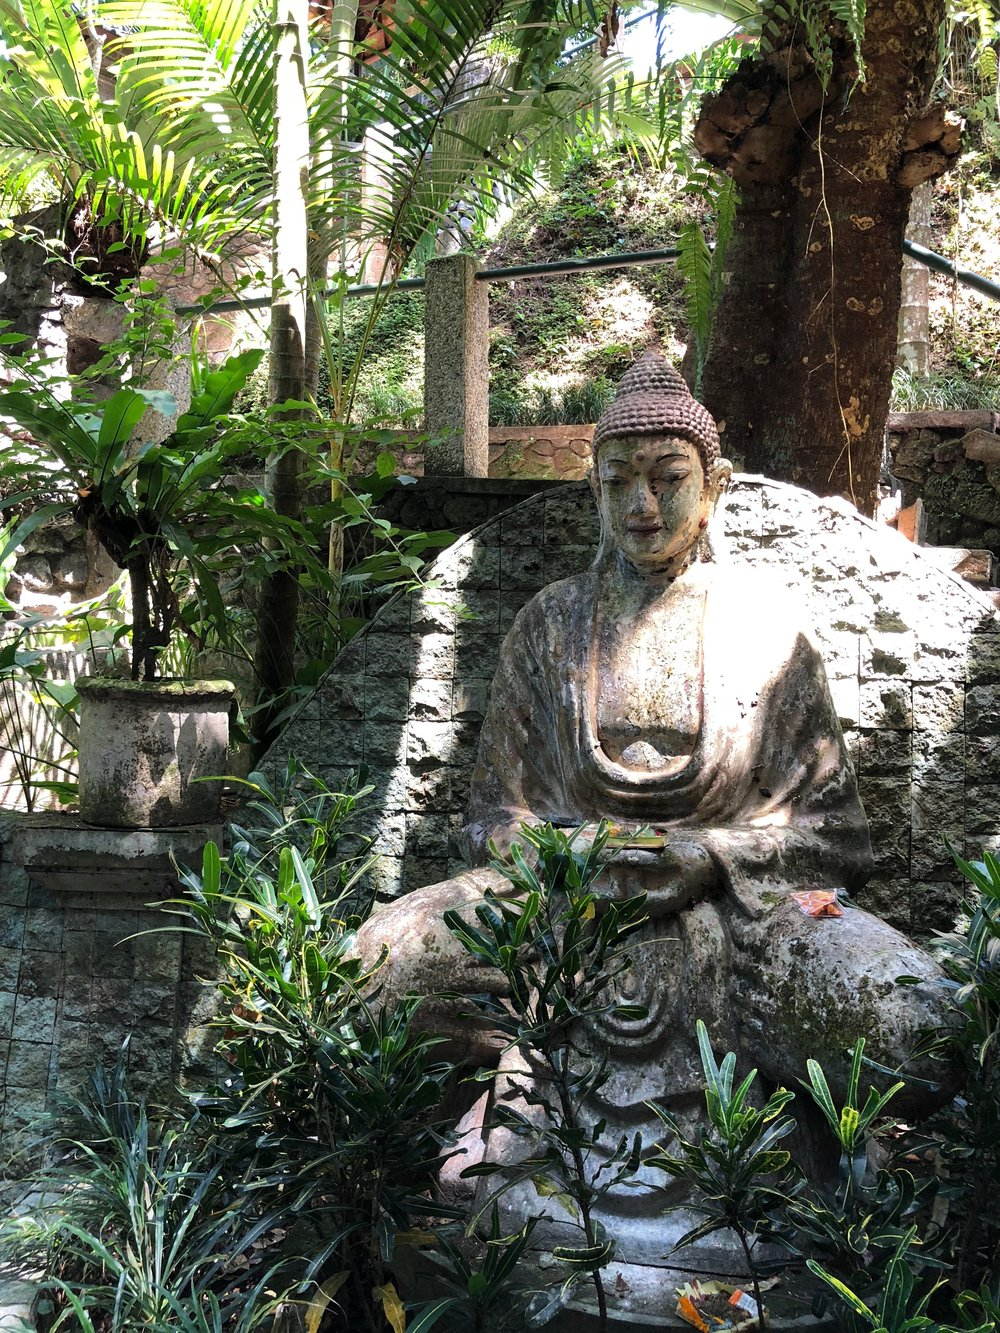 Statues of the Buddha are tucked into various nooks on the spa grounds